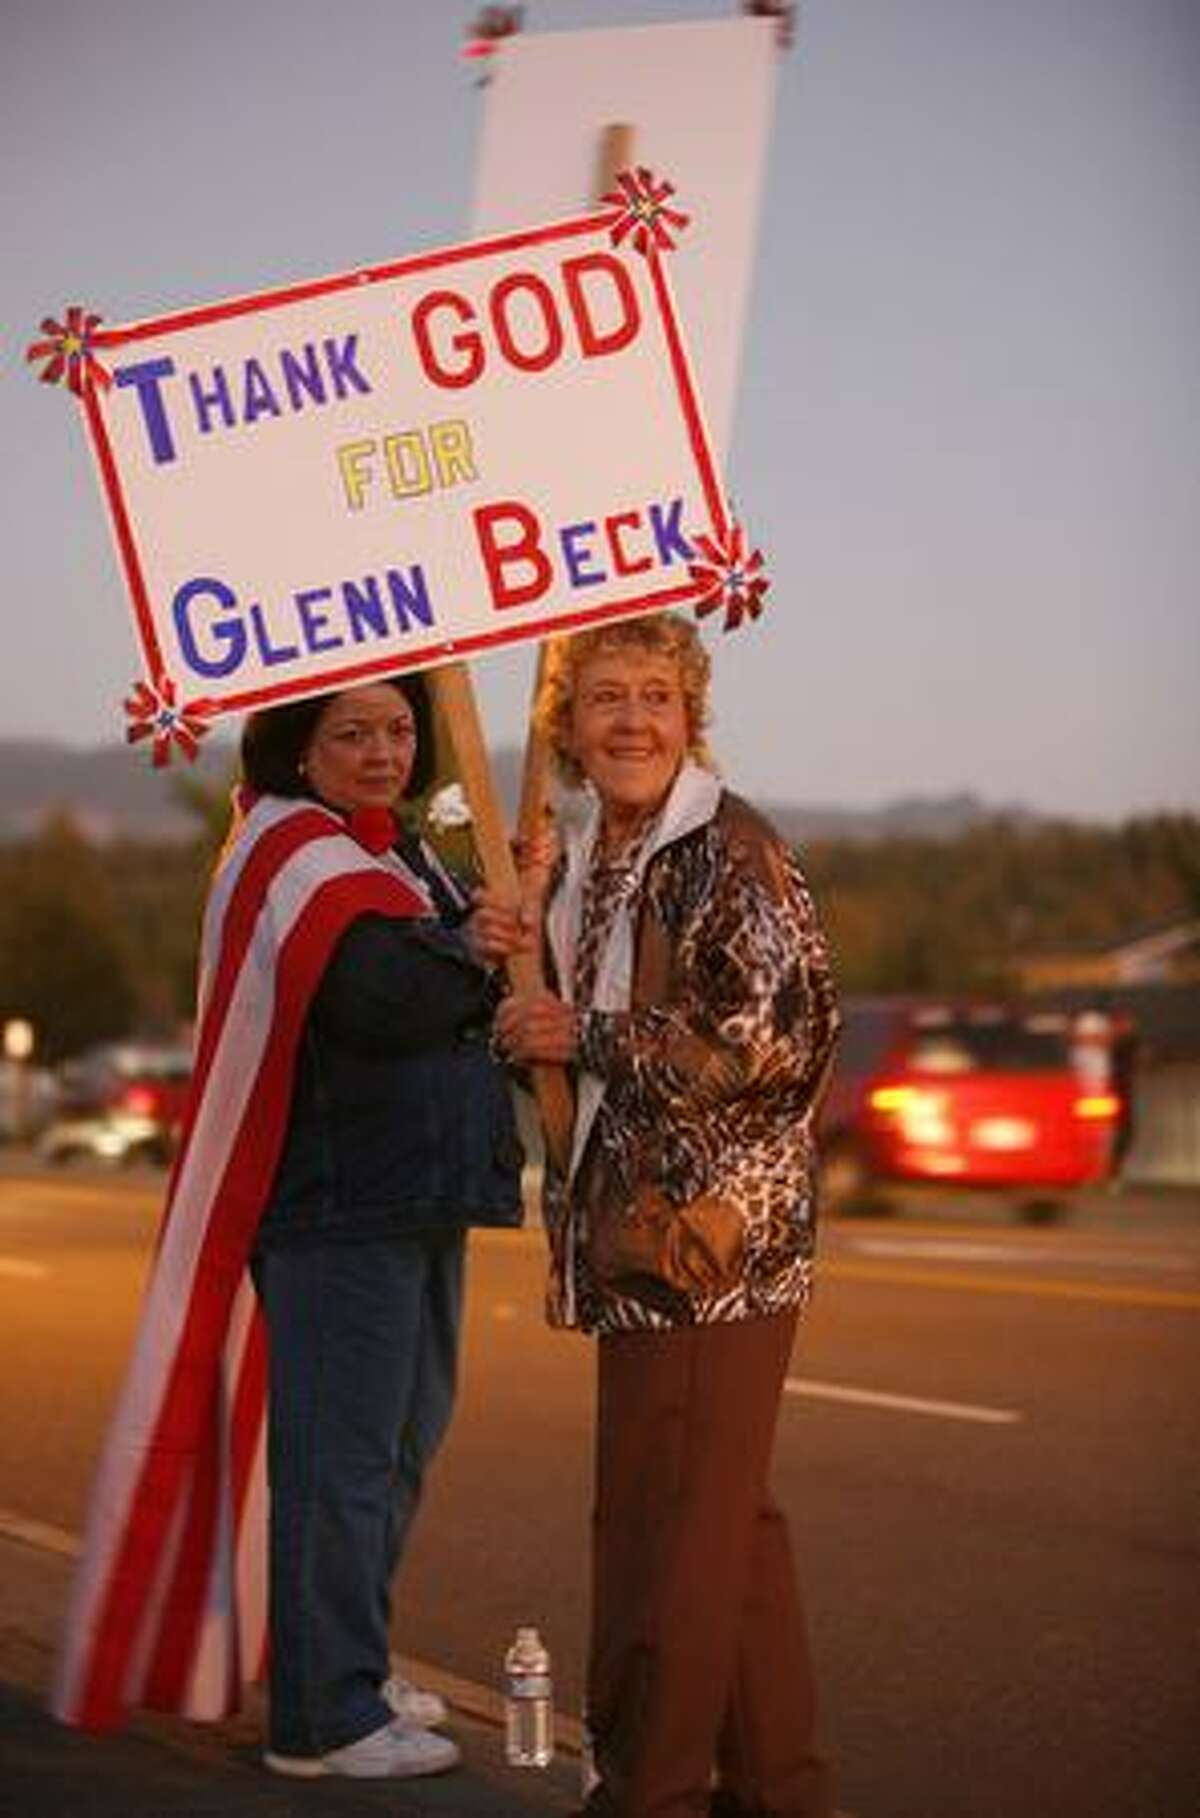 Supporters stand outside McIntyre Hall Performing Arts and Conference Center in Mount Vernon as FOX News host Glenn Beck prepares to receive the key to the city.